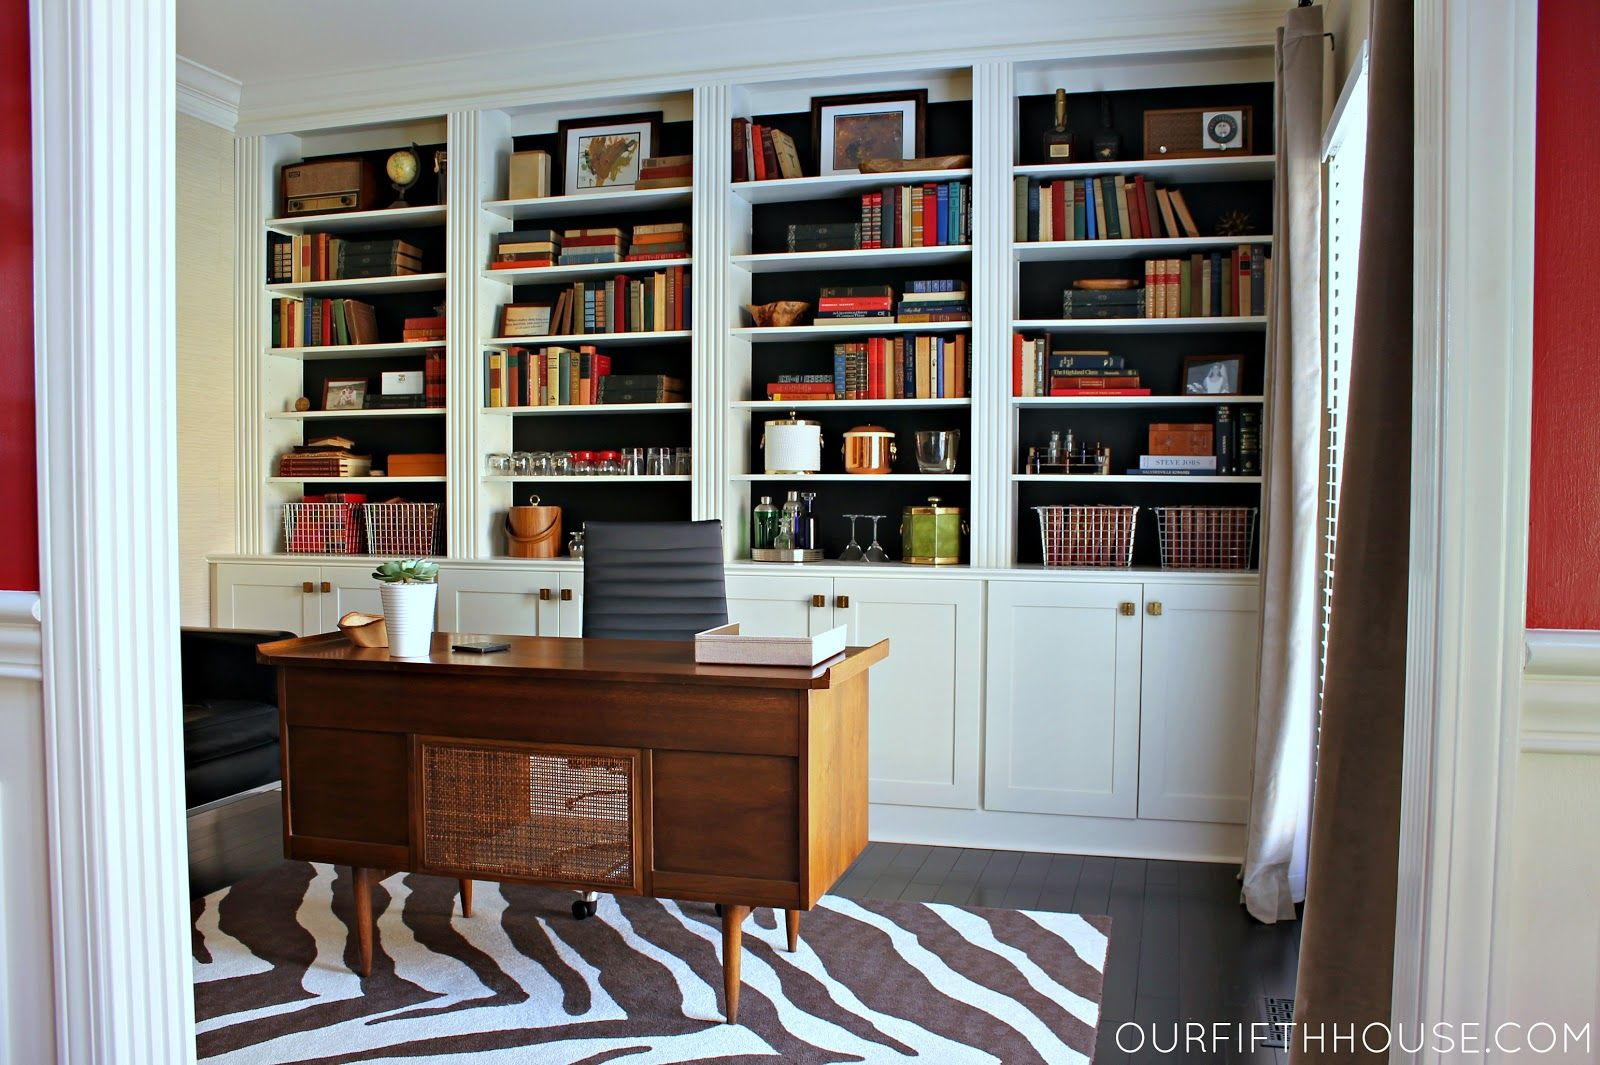 Remarkable Home Office Bookshelves House Beautifull Living Rooms Ideas Largest Home Design Picture Inspirations Pitcheantrous